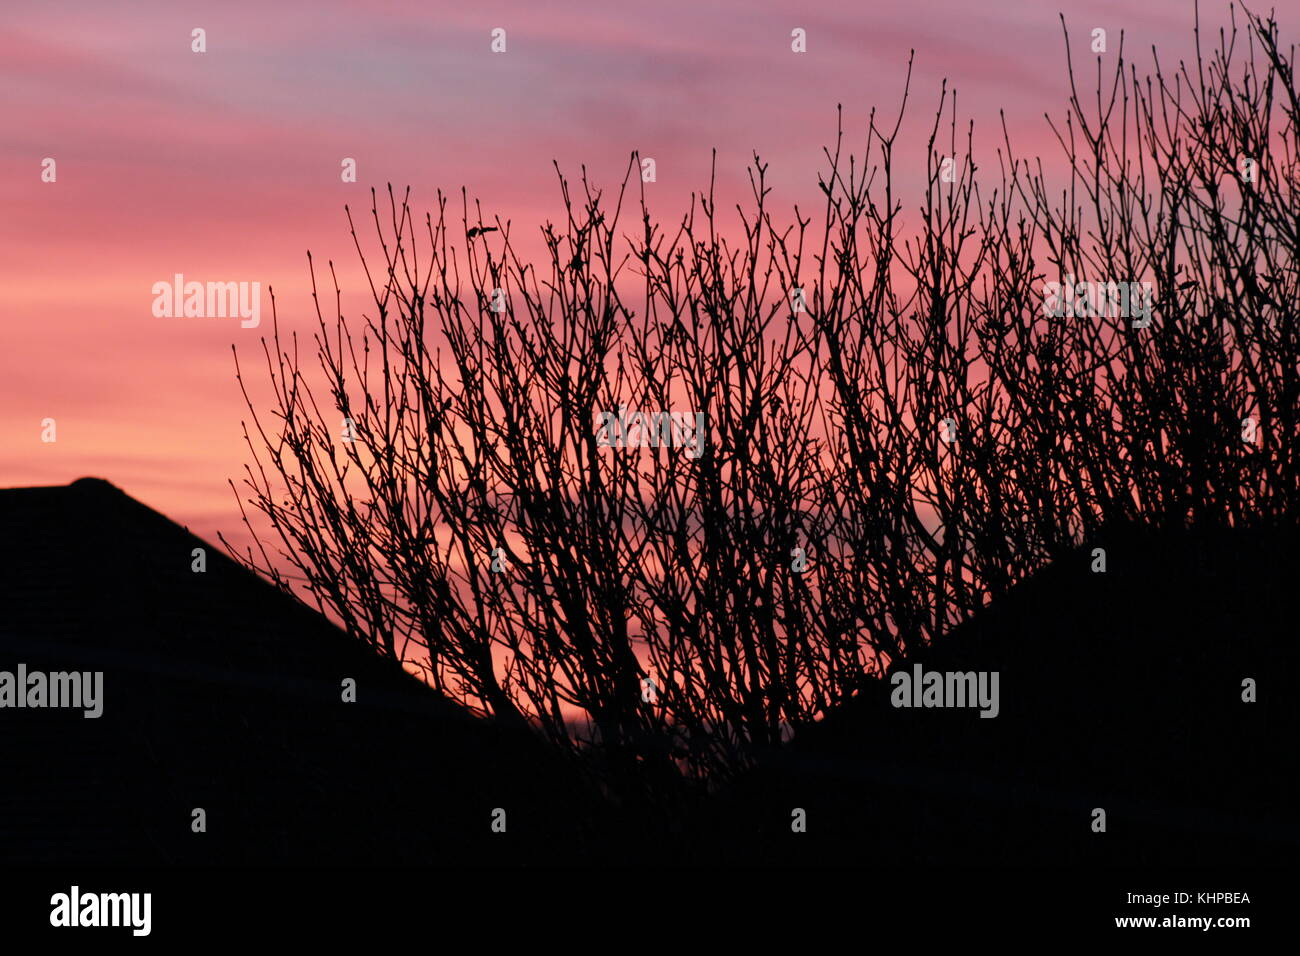 orange sunset through bare trees over roof tops - Stock Image